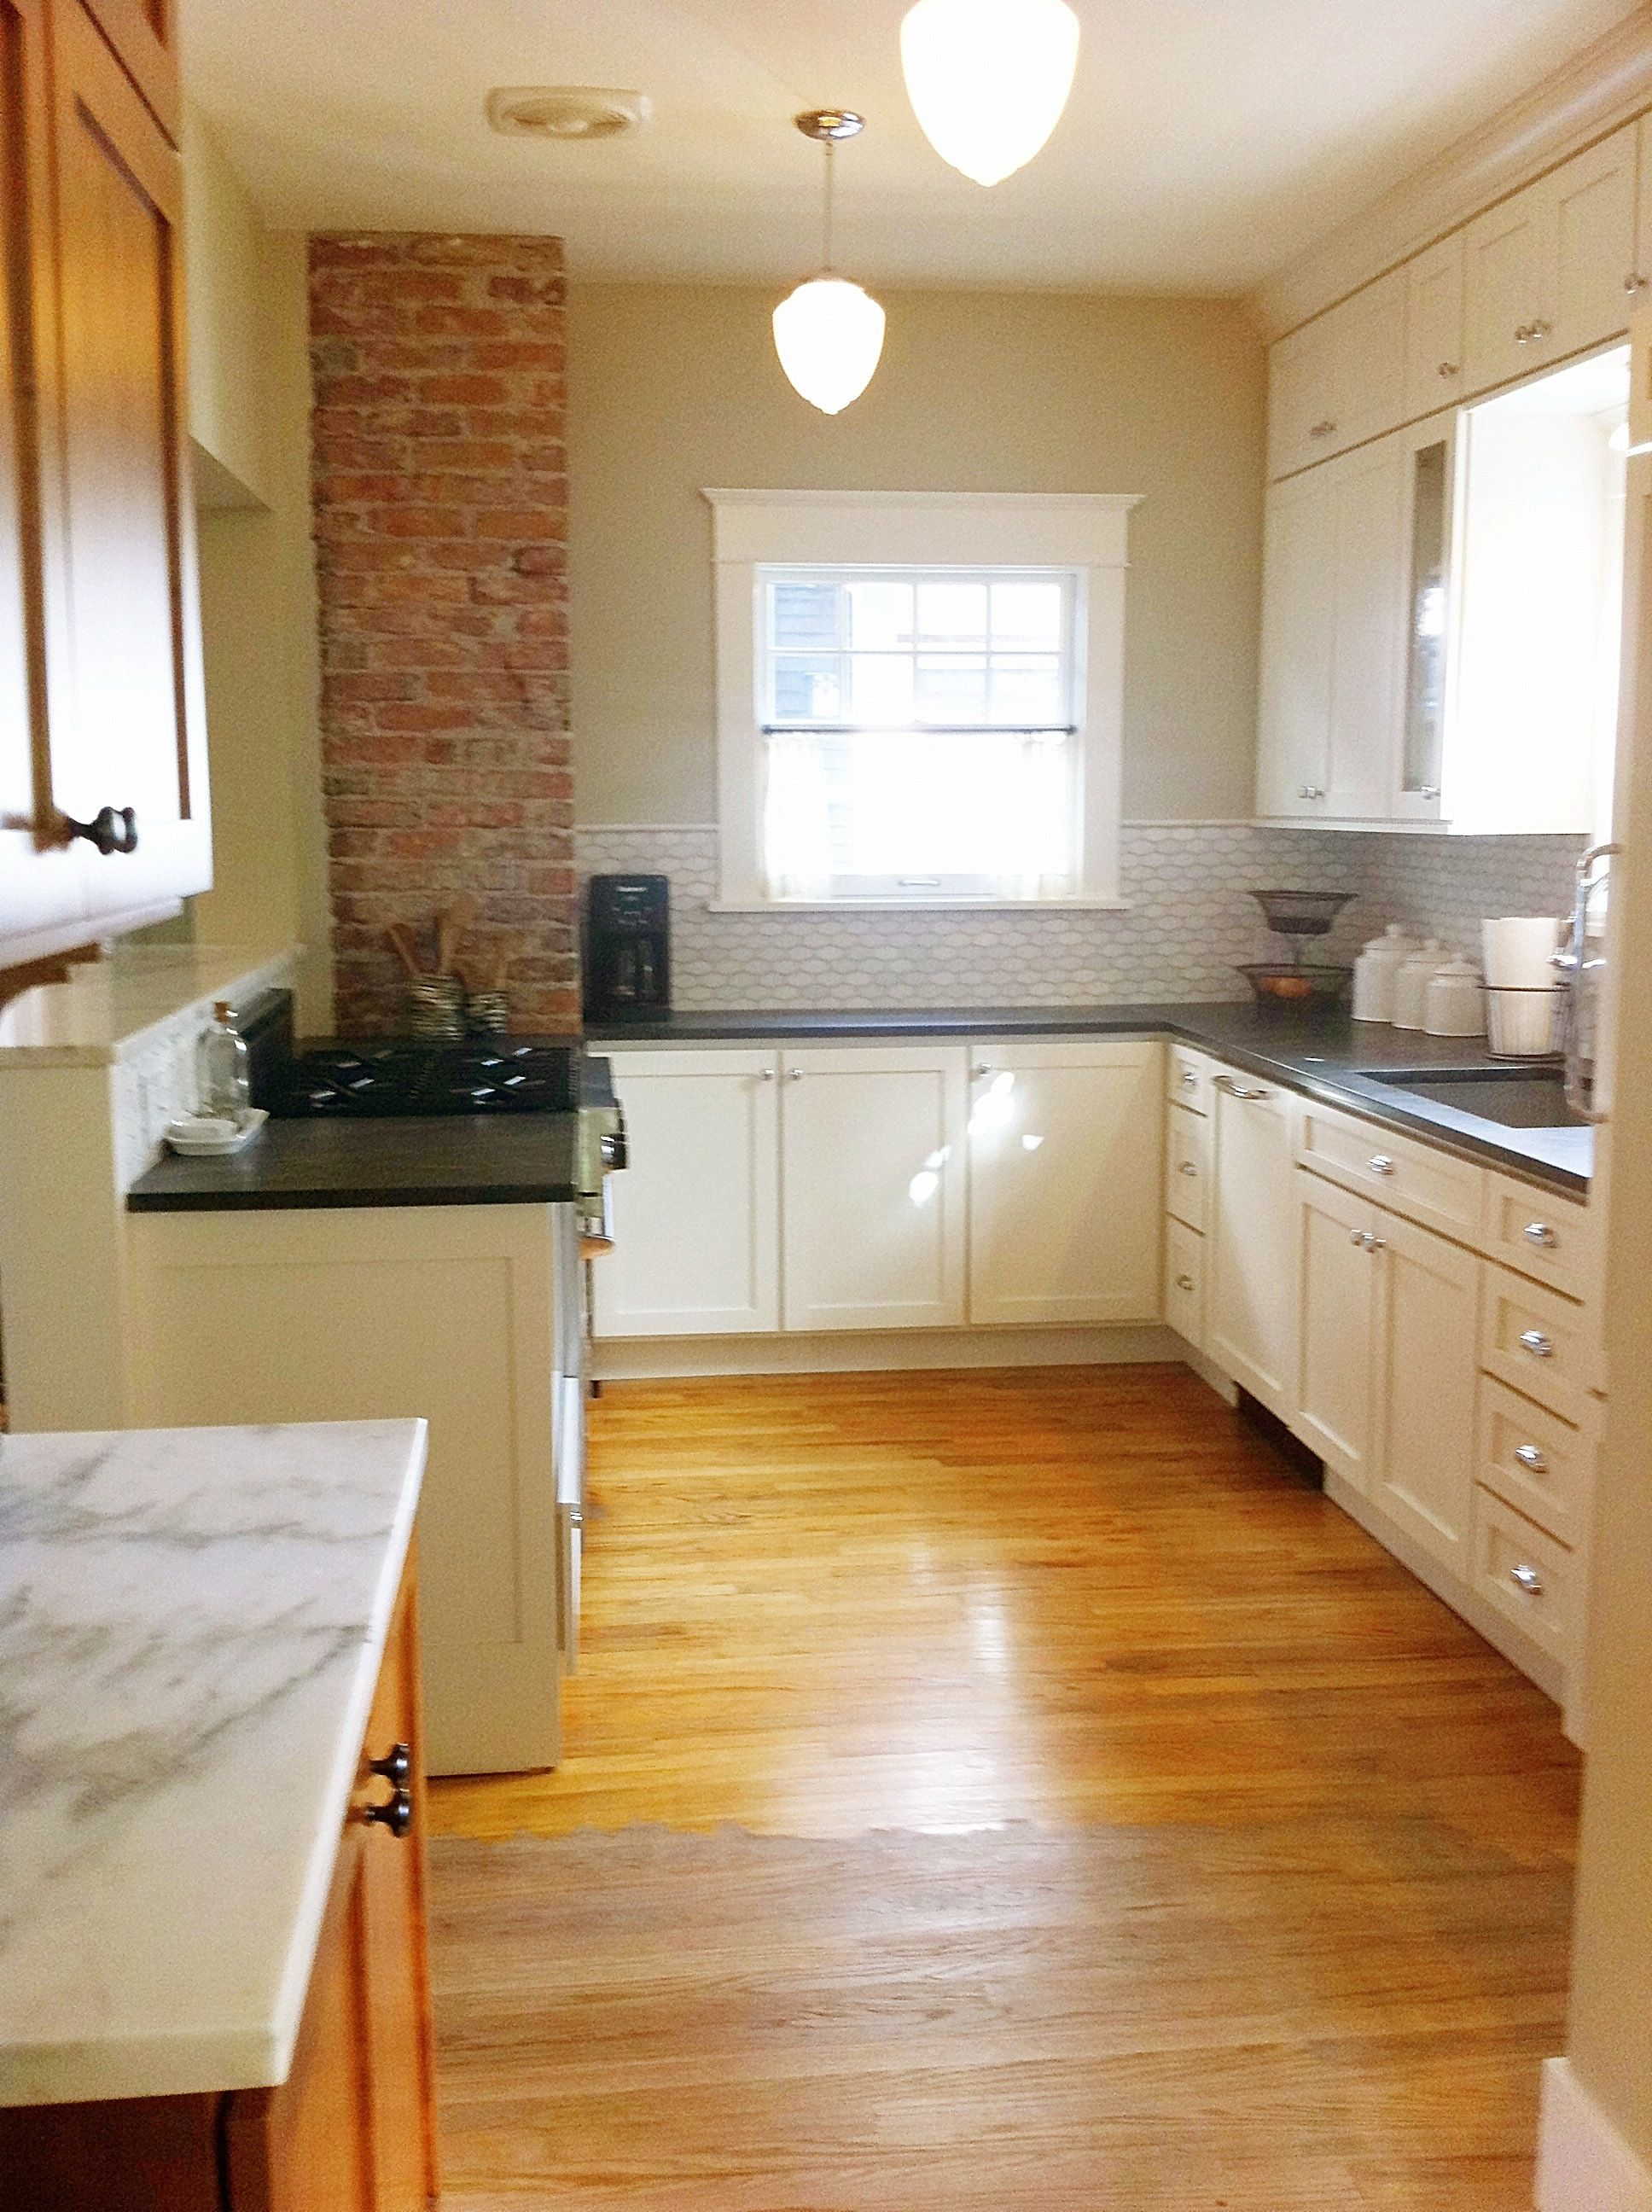 My Tiny Galley Kitchen Love The Brick And The Backsplash Tile